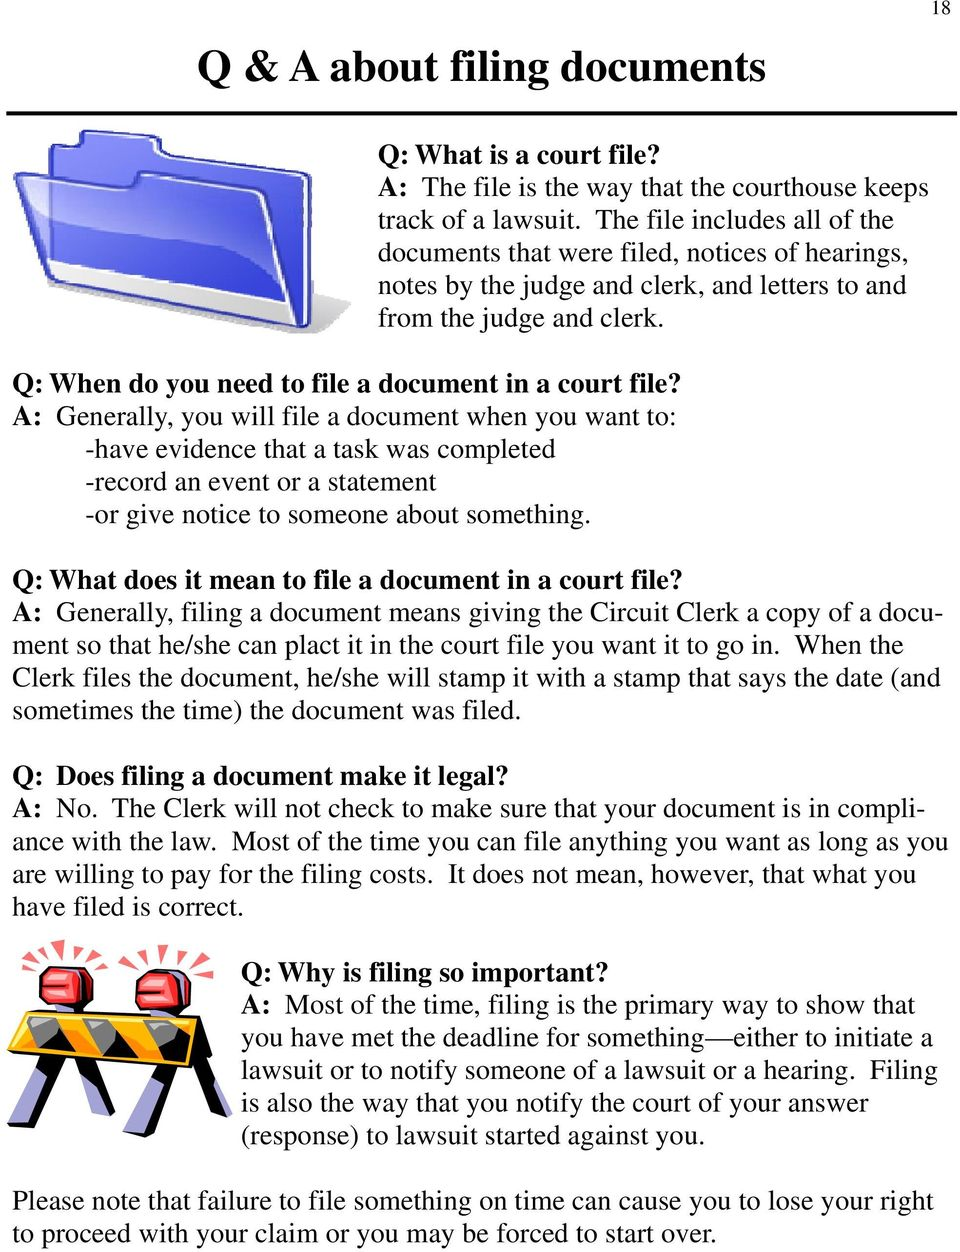 Q: When do you need to file a document in a court file?